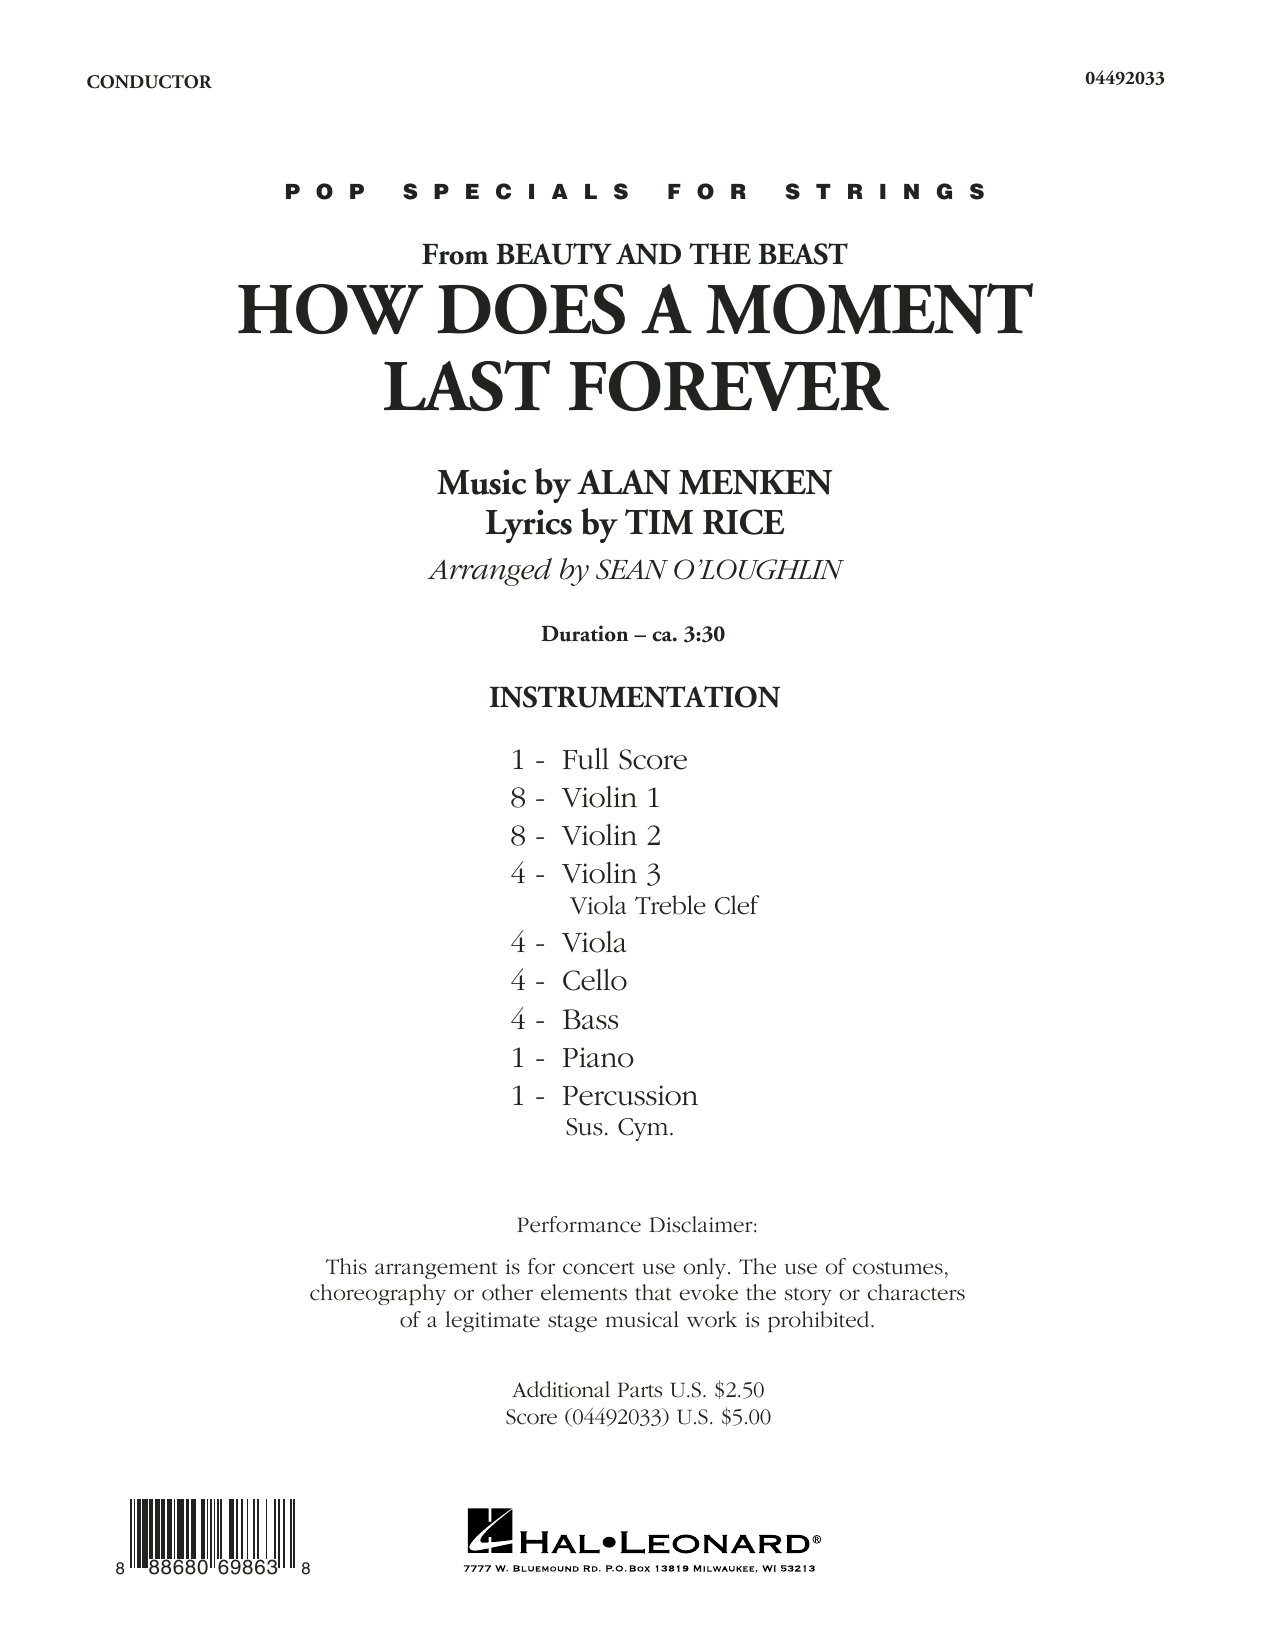 Sean O'Loughlin How Does a Moment Last Forever (from Beauty and the Beast) - Conductor Score (Full Score) sheet music notes and chords. Download Printable PDF.